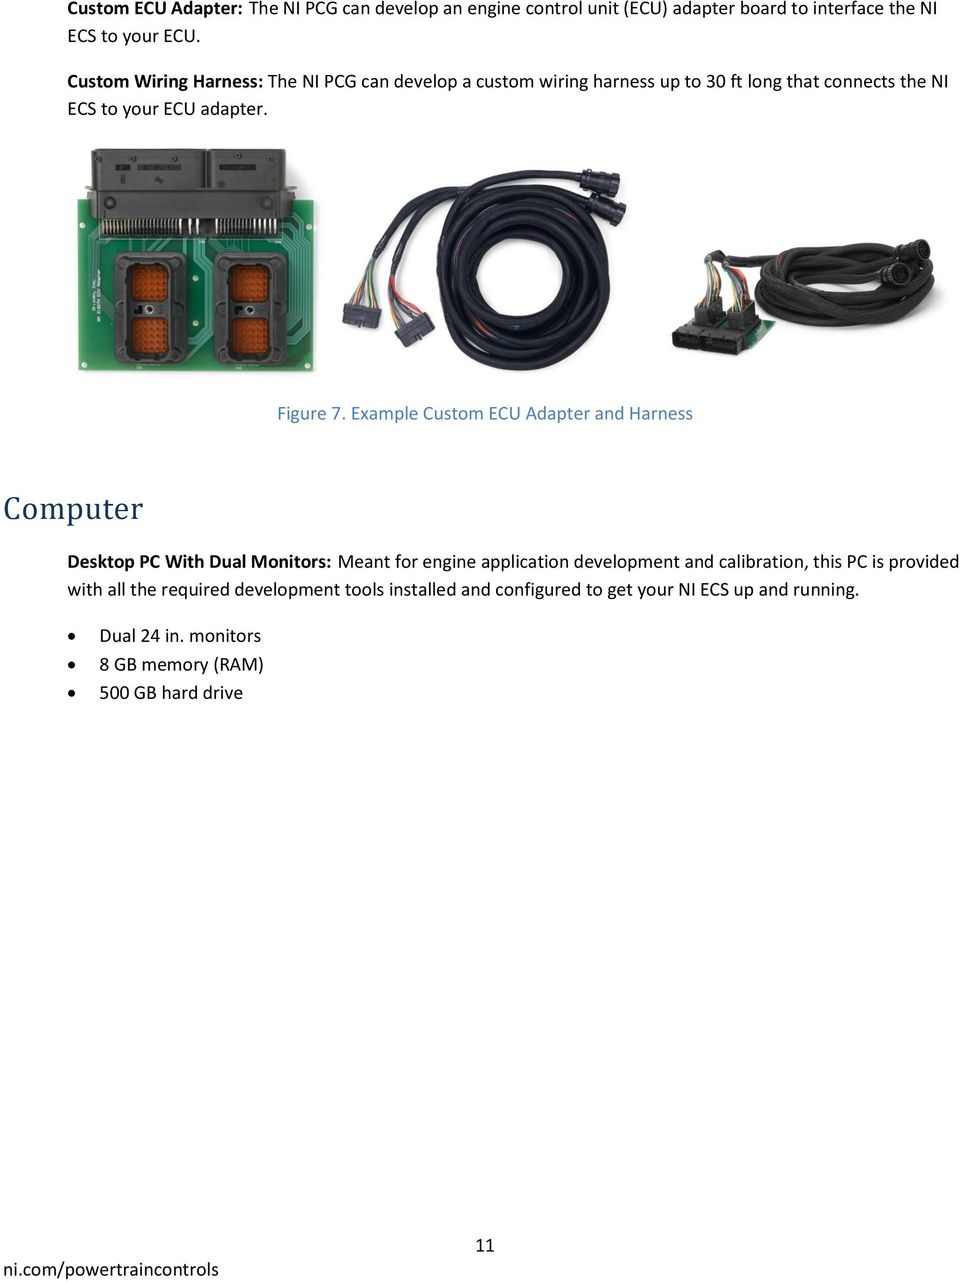 Ni Engine Control System Configuration Guide Pdf Custom Wiring Harness Ls M S2 Example Ecu Adapter And Computer Desktop Pc With Dual Monitors Meant For